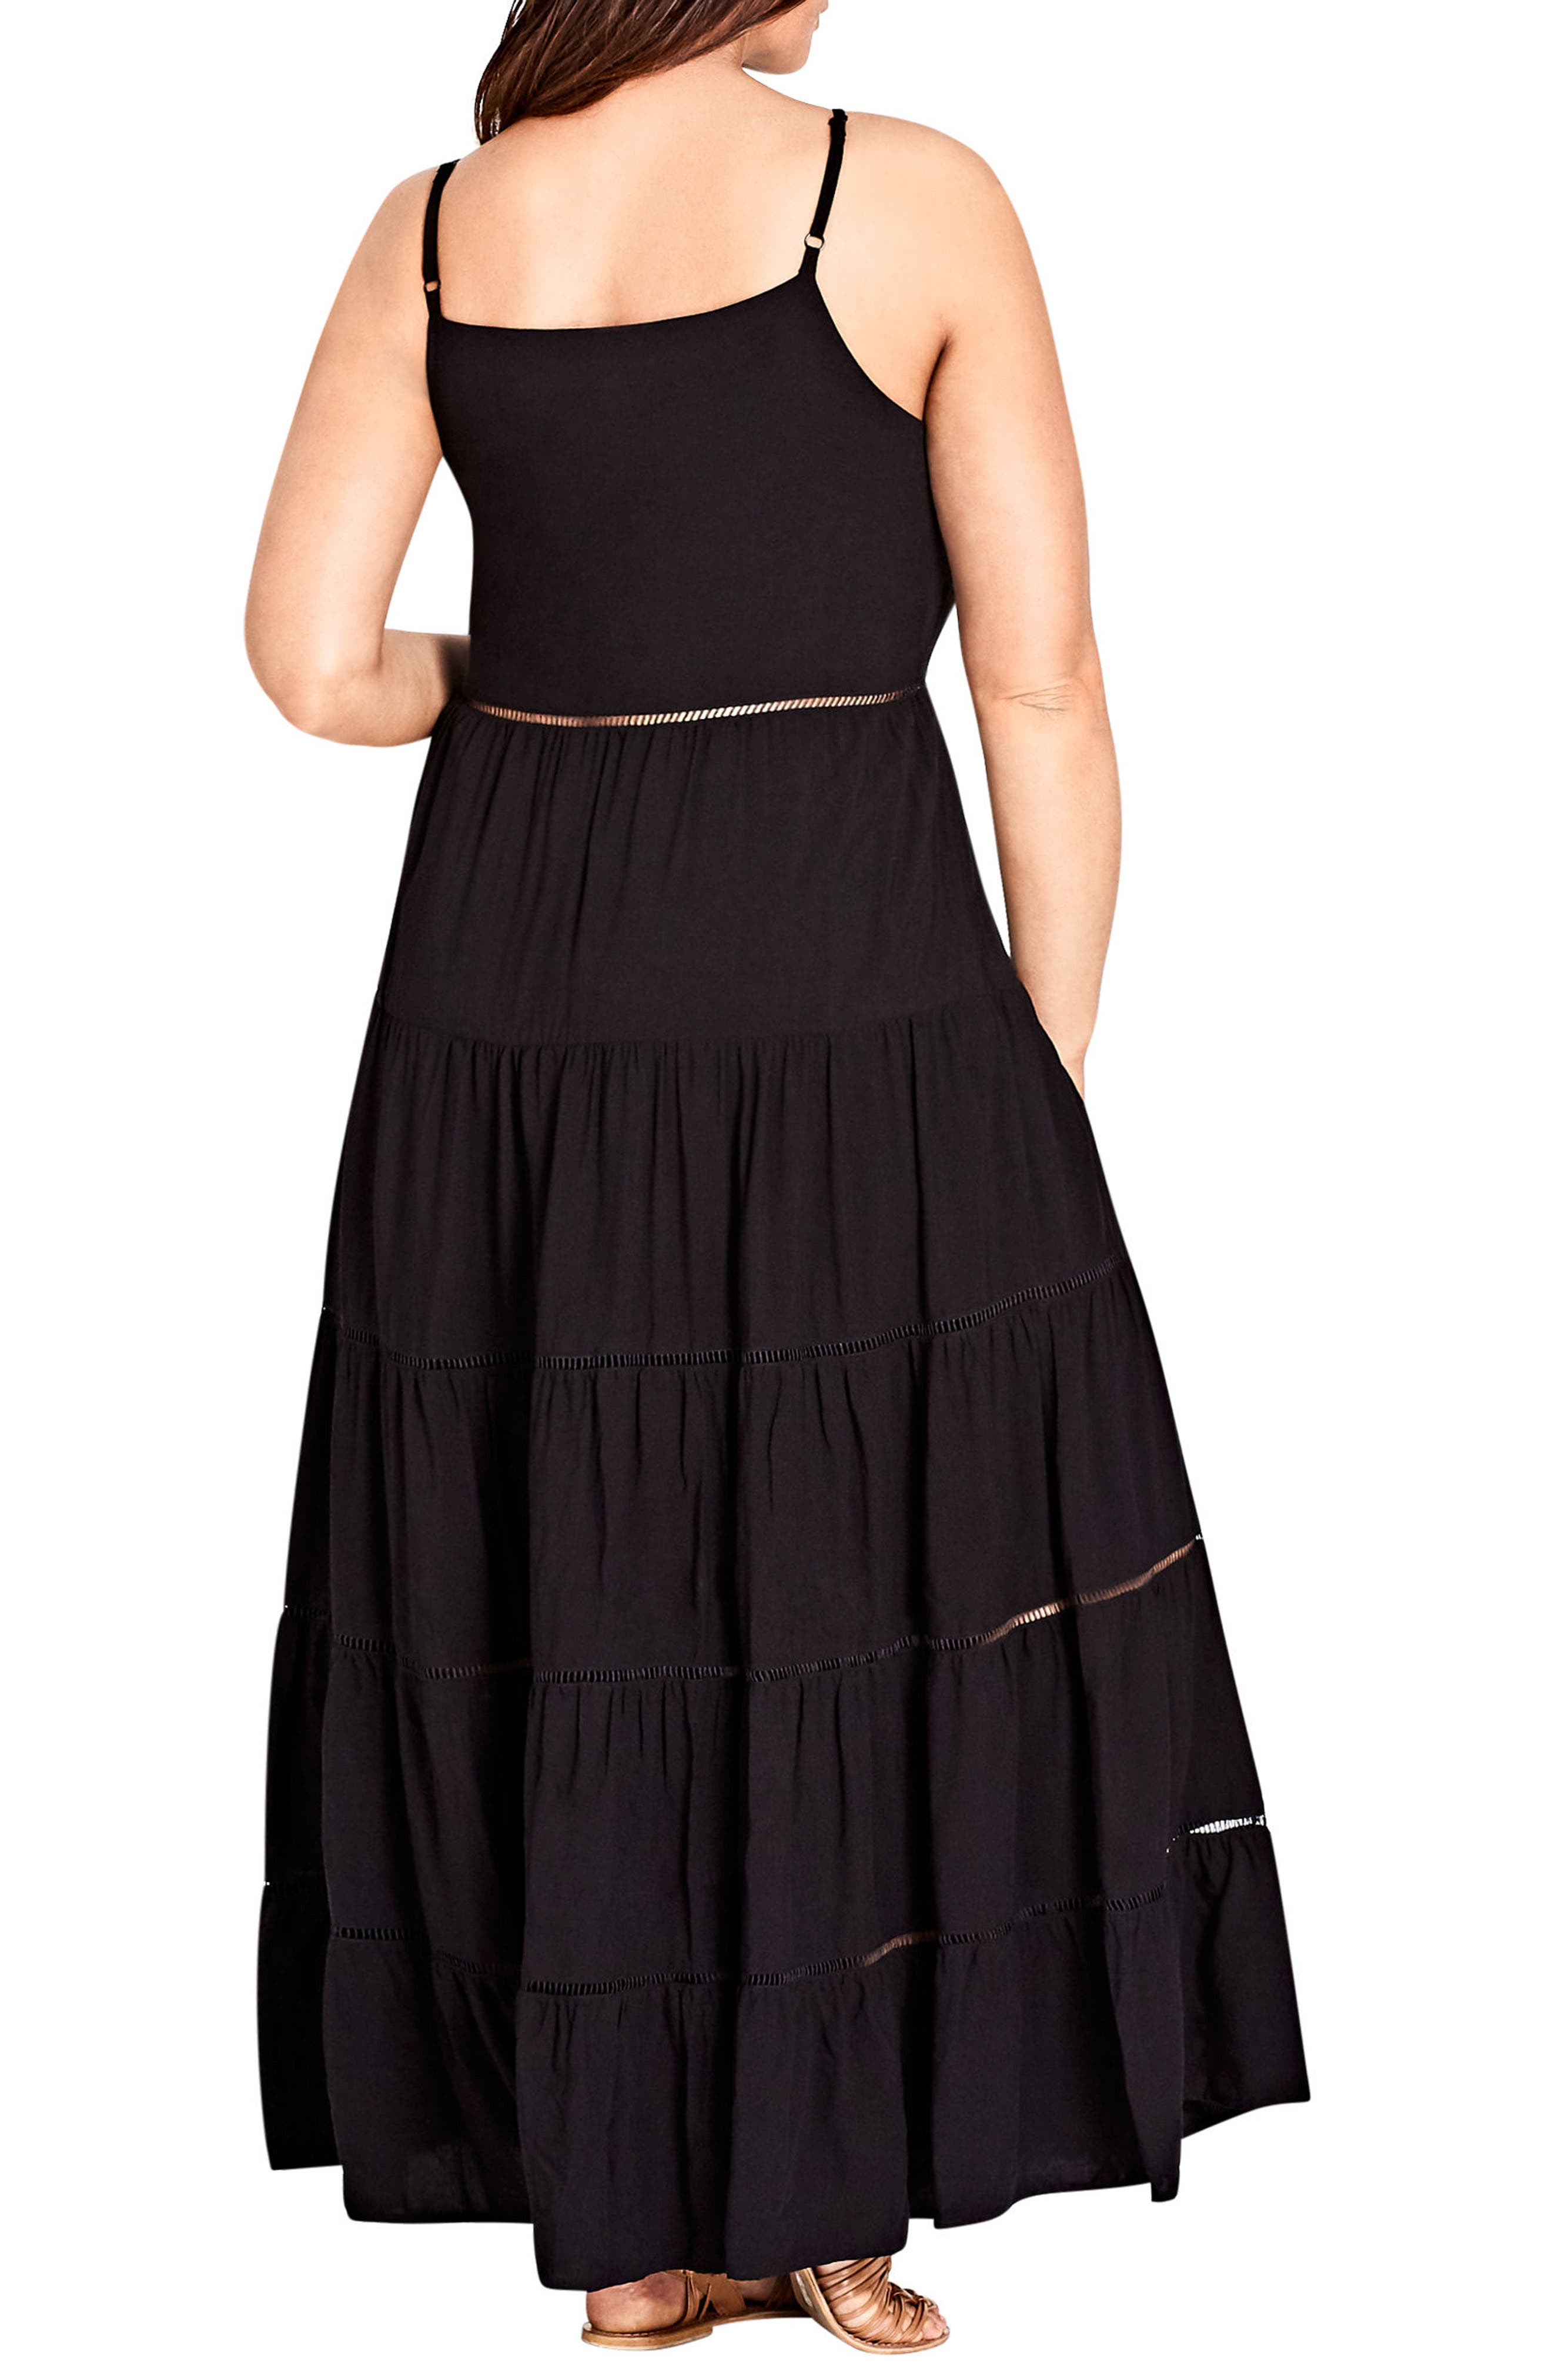 Festival Maxi Dress,                             Alternate thumbnail 2, color,                             Black